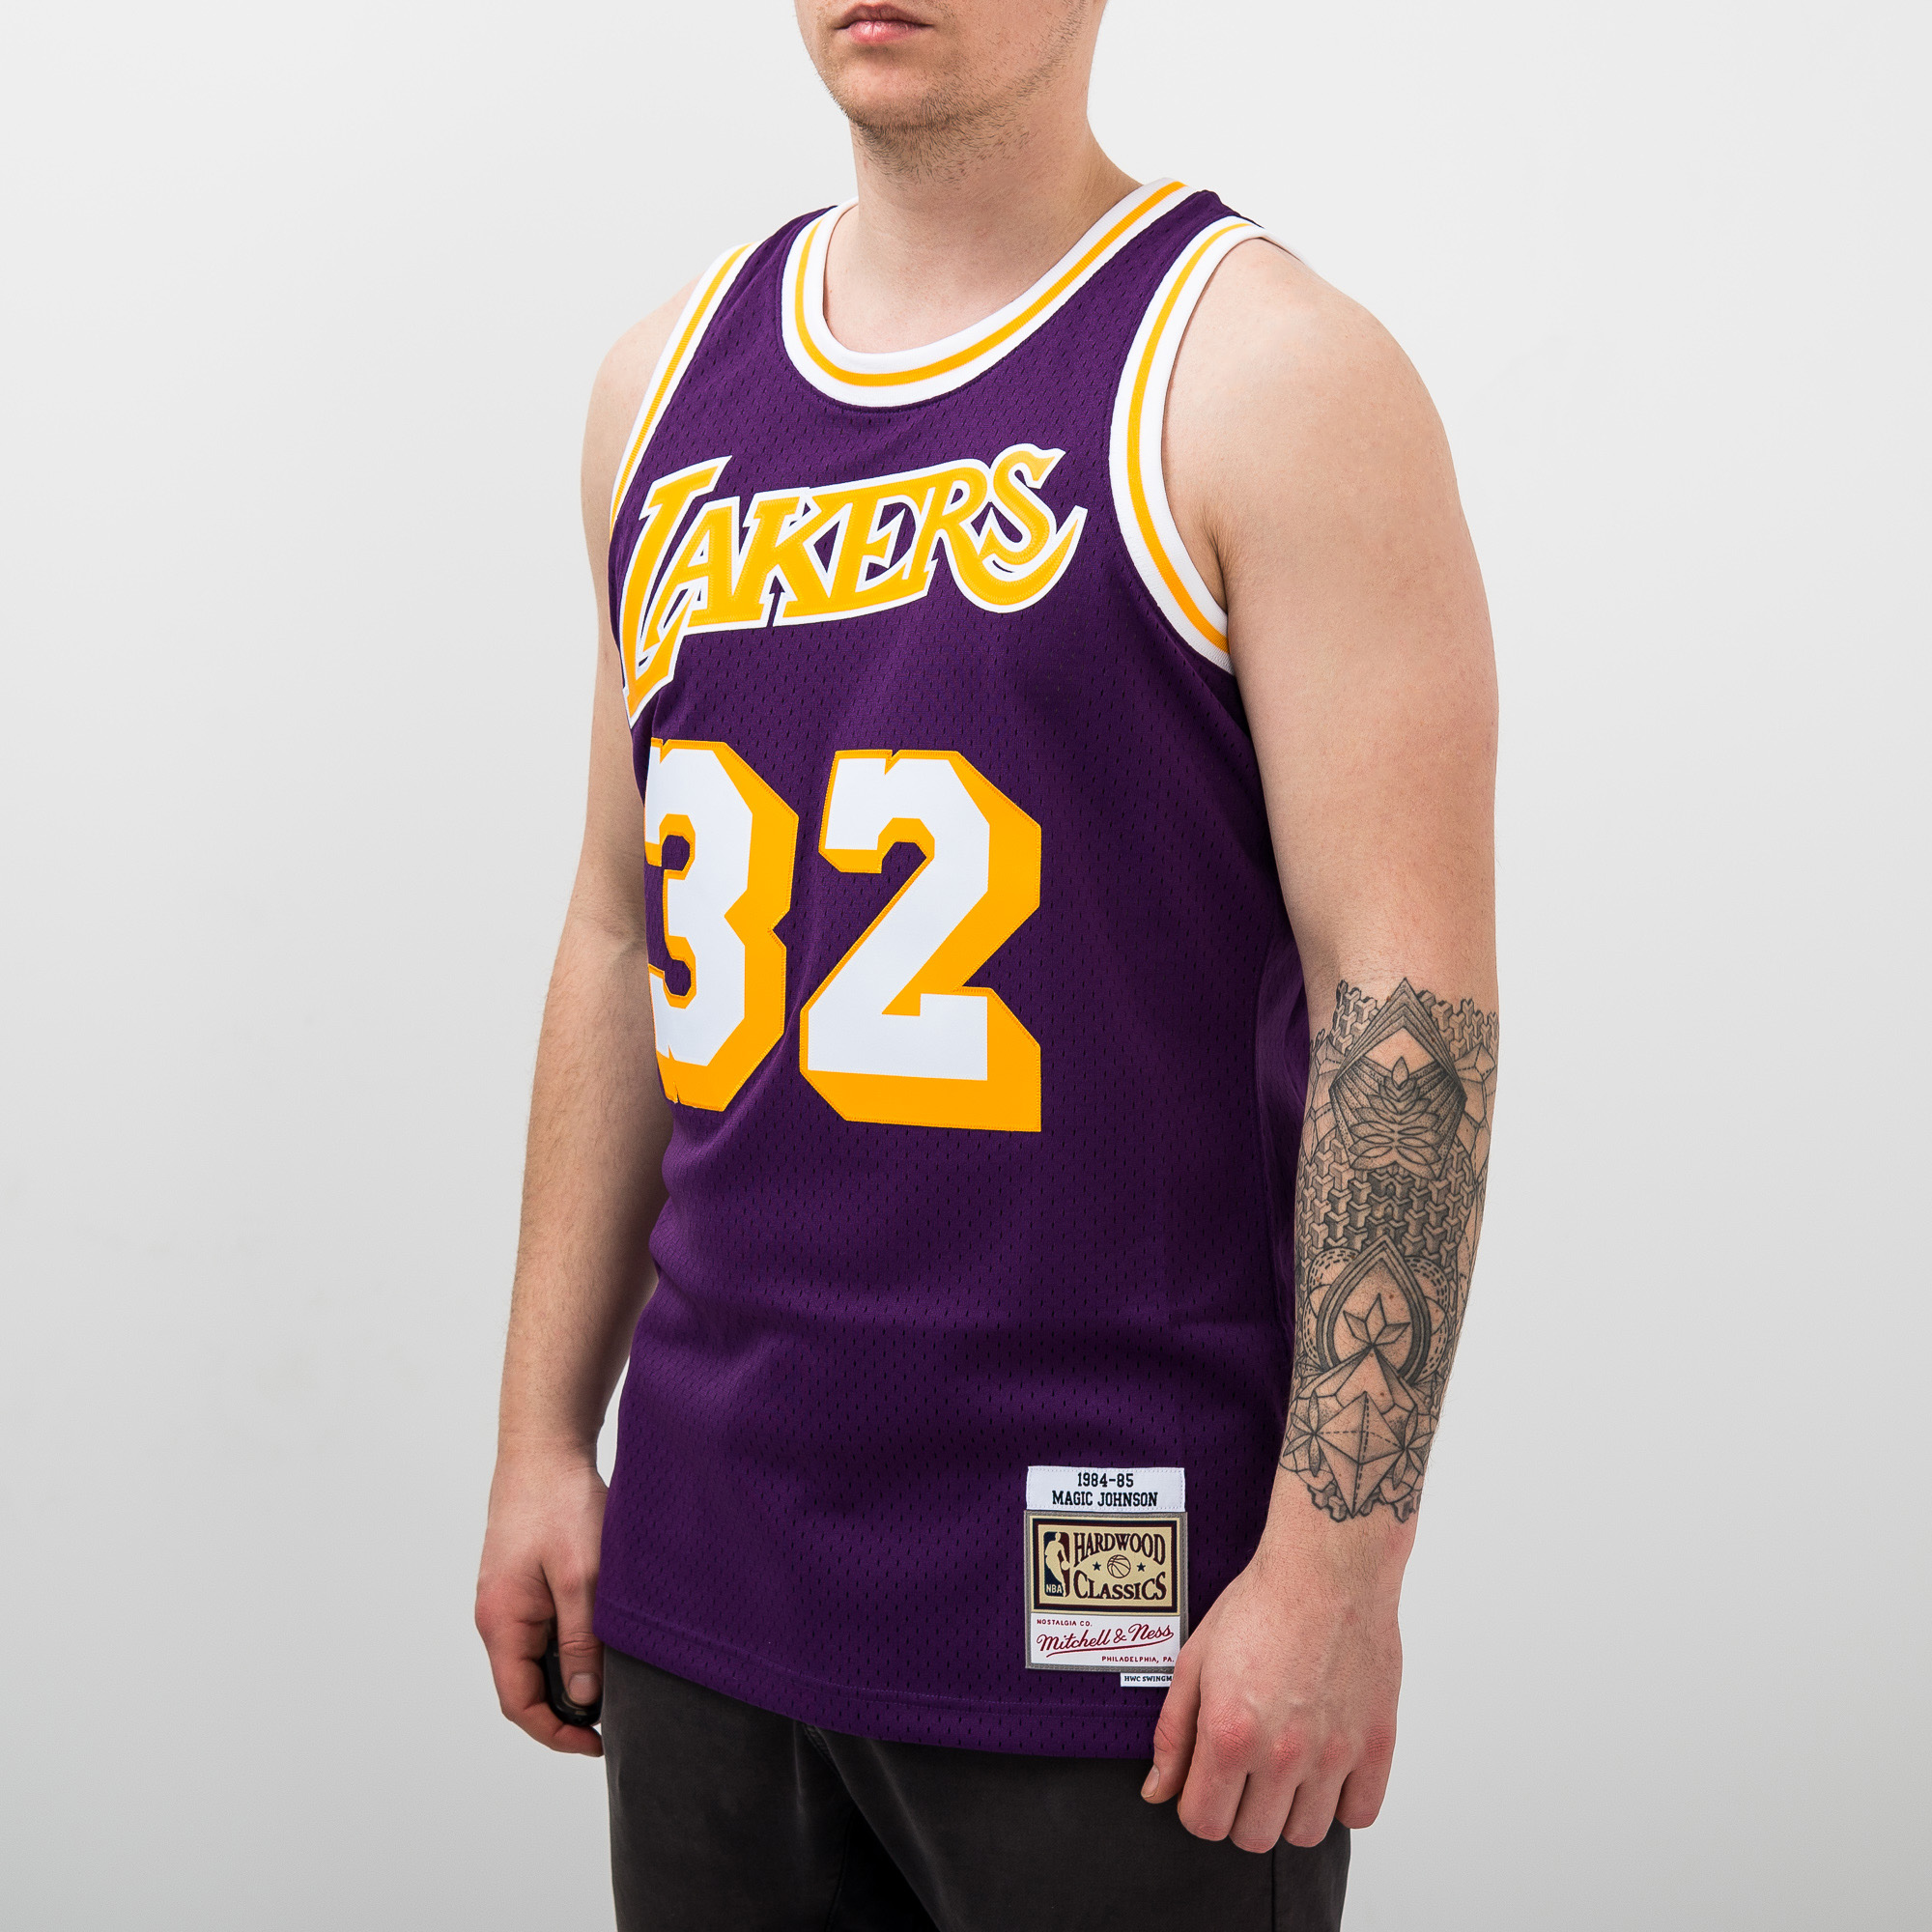 a8fdf04f5 Mitchell   Ness NBA Los Angeles Lakers Magic Johnson 1984-85 Swingman  Jersey - NBA Shop Los Angeles Lakers Merchandise - Superfanas.lt